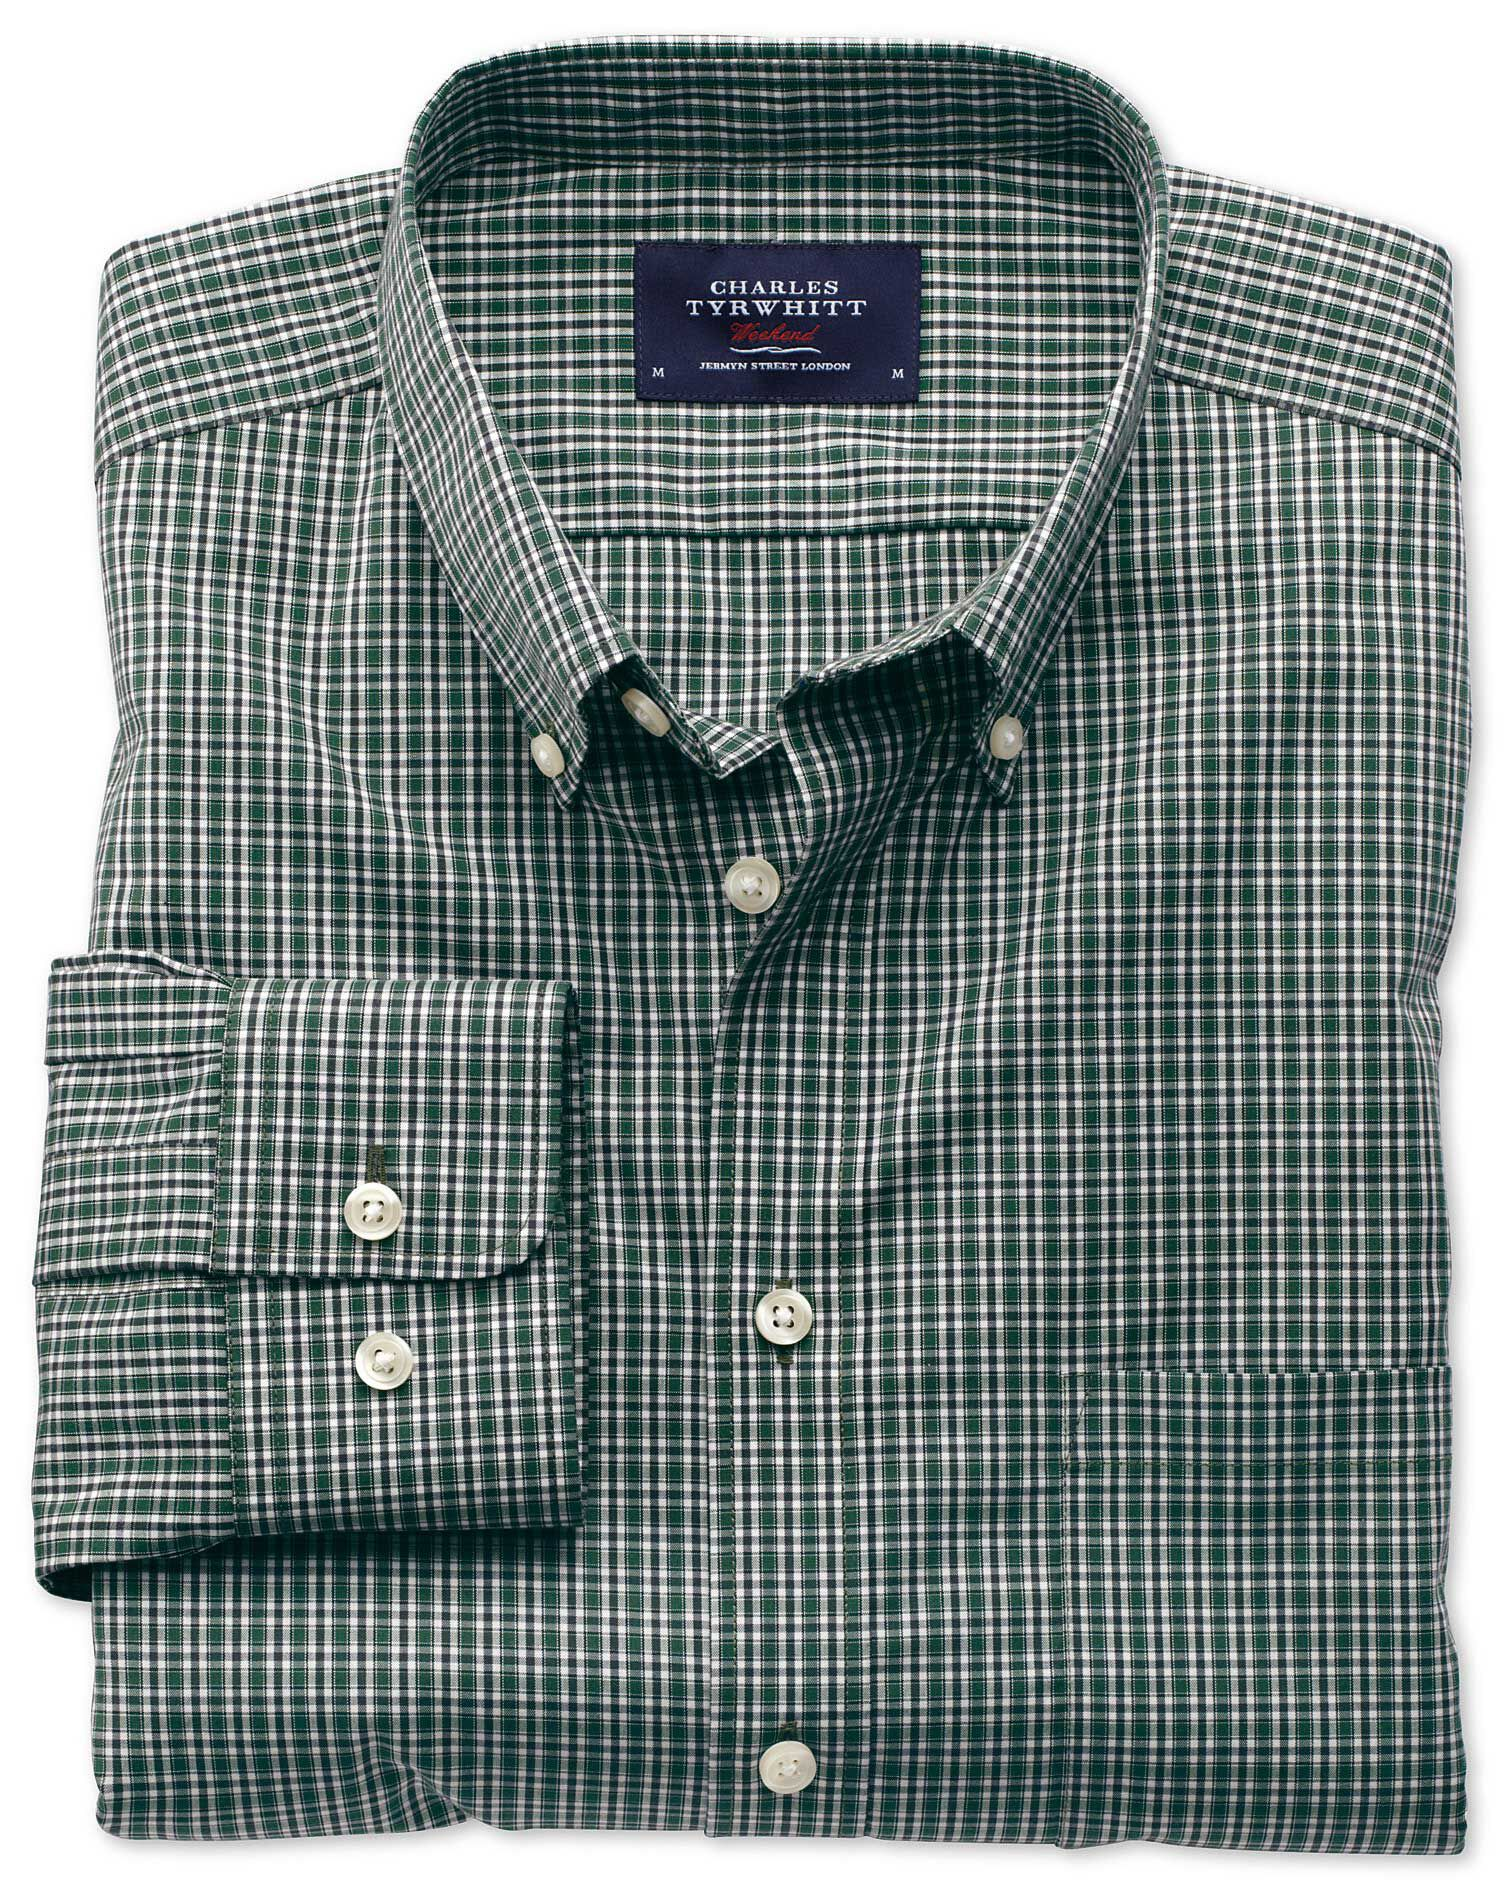 Extra Slim Fit Non-Iron Poplin Green and Blue Check Cotton Shirt Single Cuff Size Small by Charles T